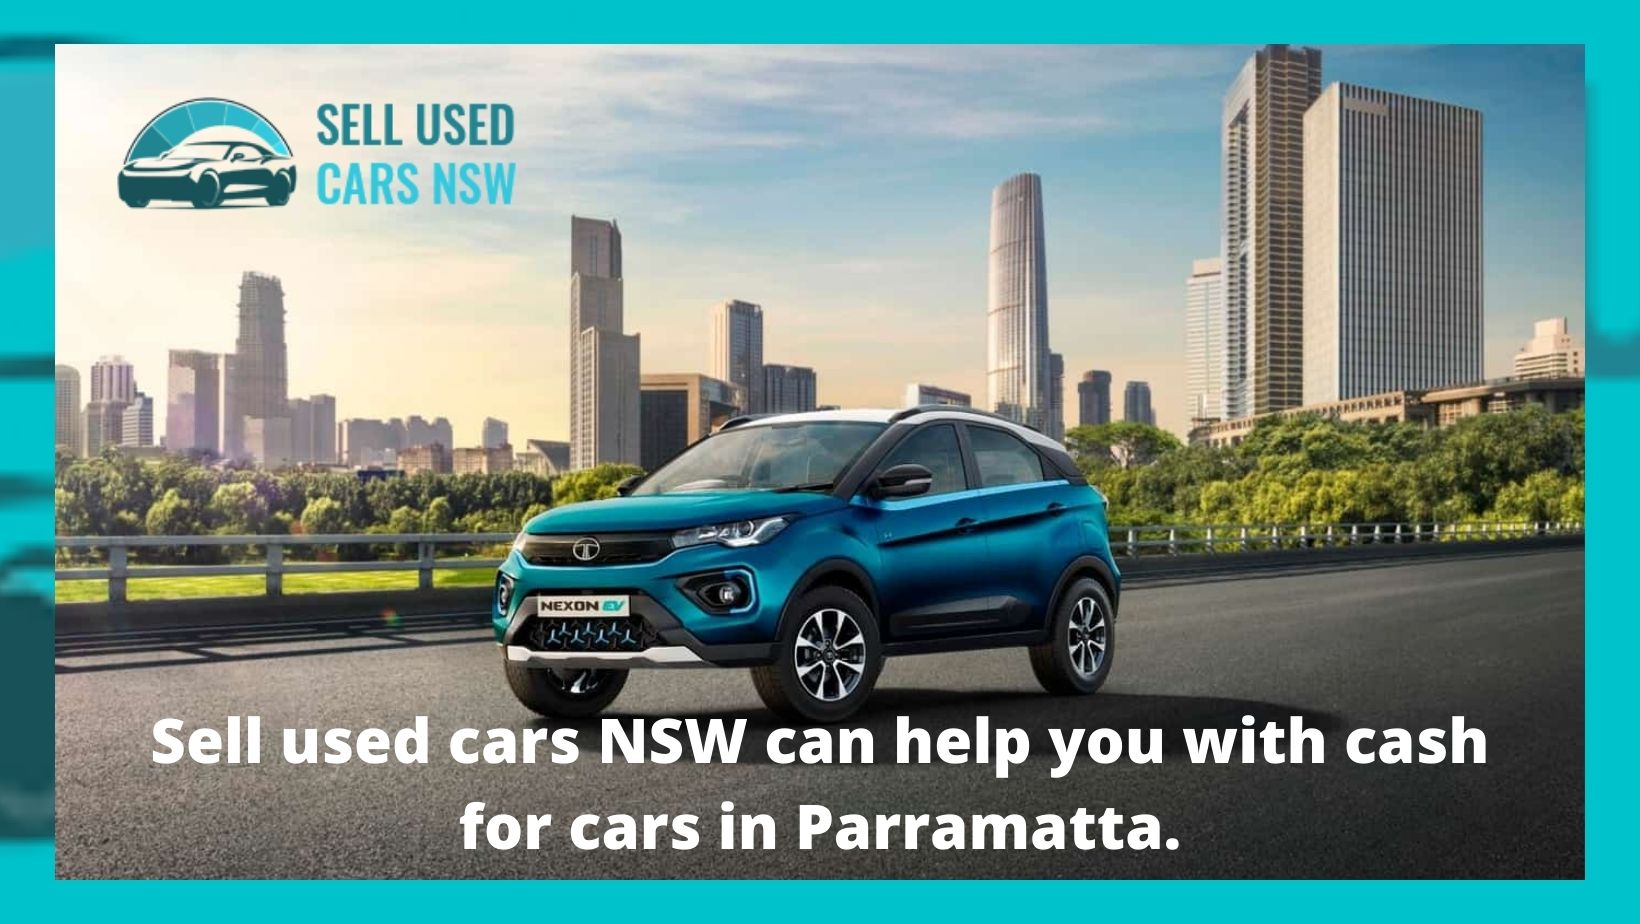 Sell used cars NSW can help you with cash for cars in Parramatta.